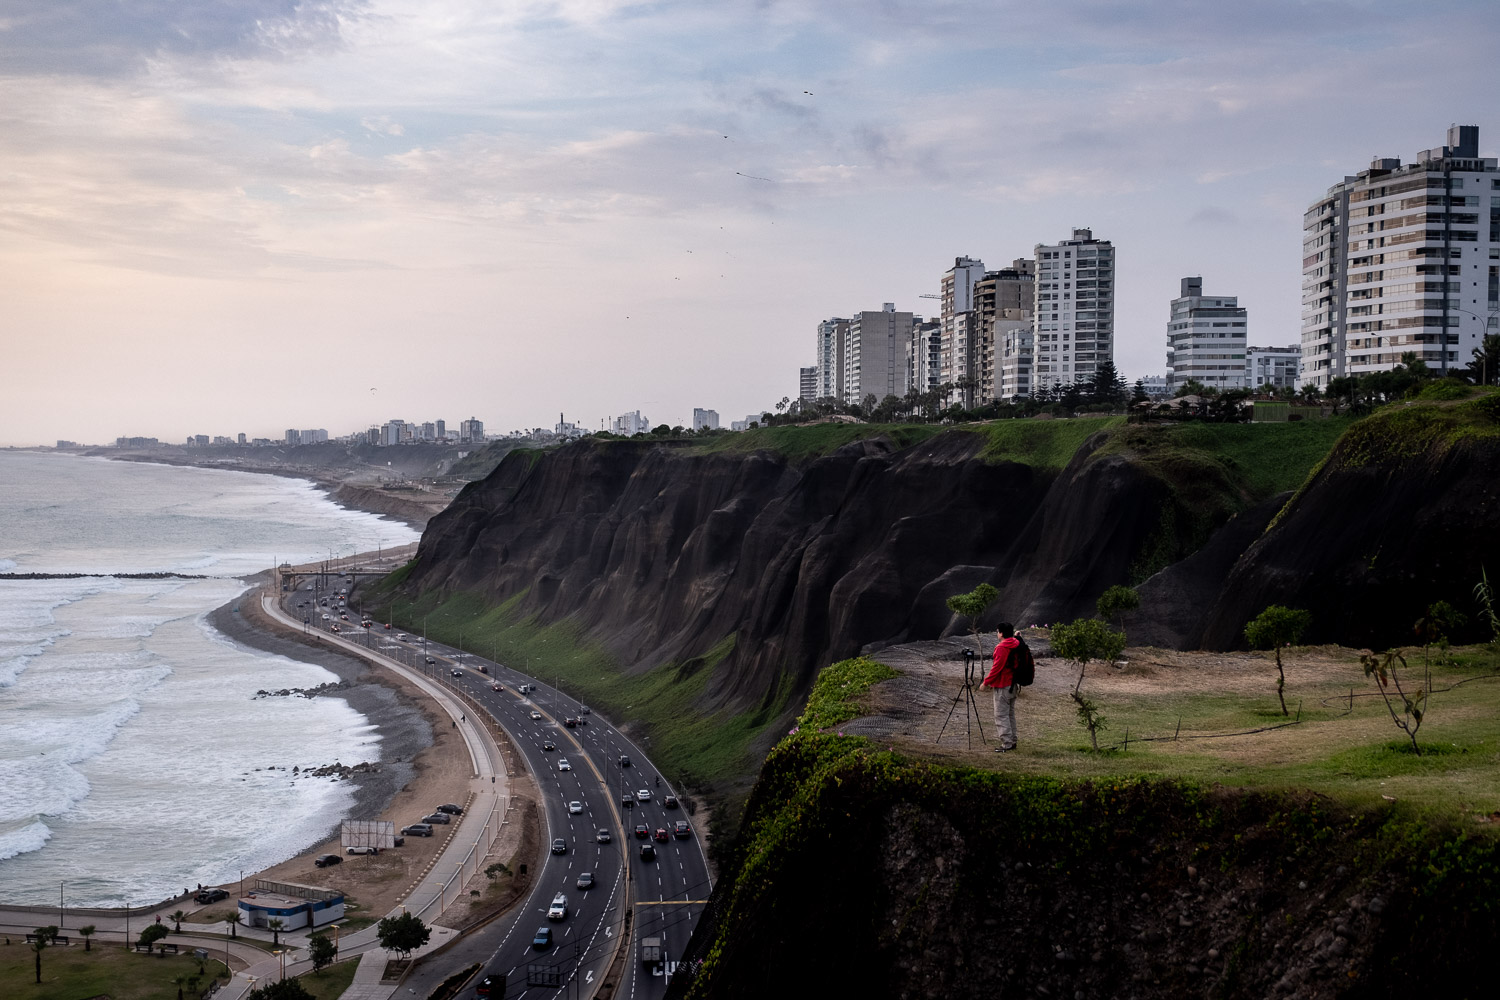 """Views of the ocean in Lima, Peru. Travel photography and guide by © Natasha Lequepeys for """"And Then I Met Yoko"""". #photoblog #travelblog #travelperu"""